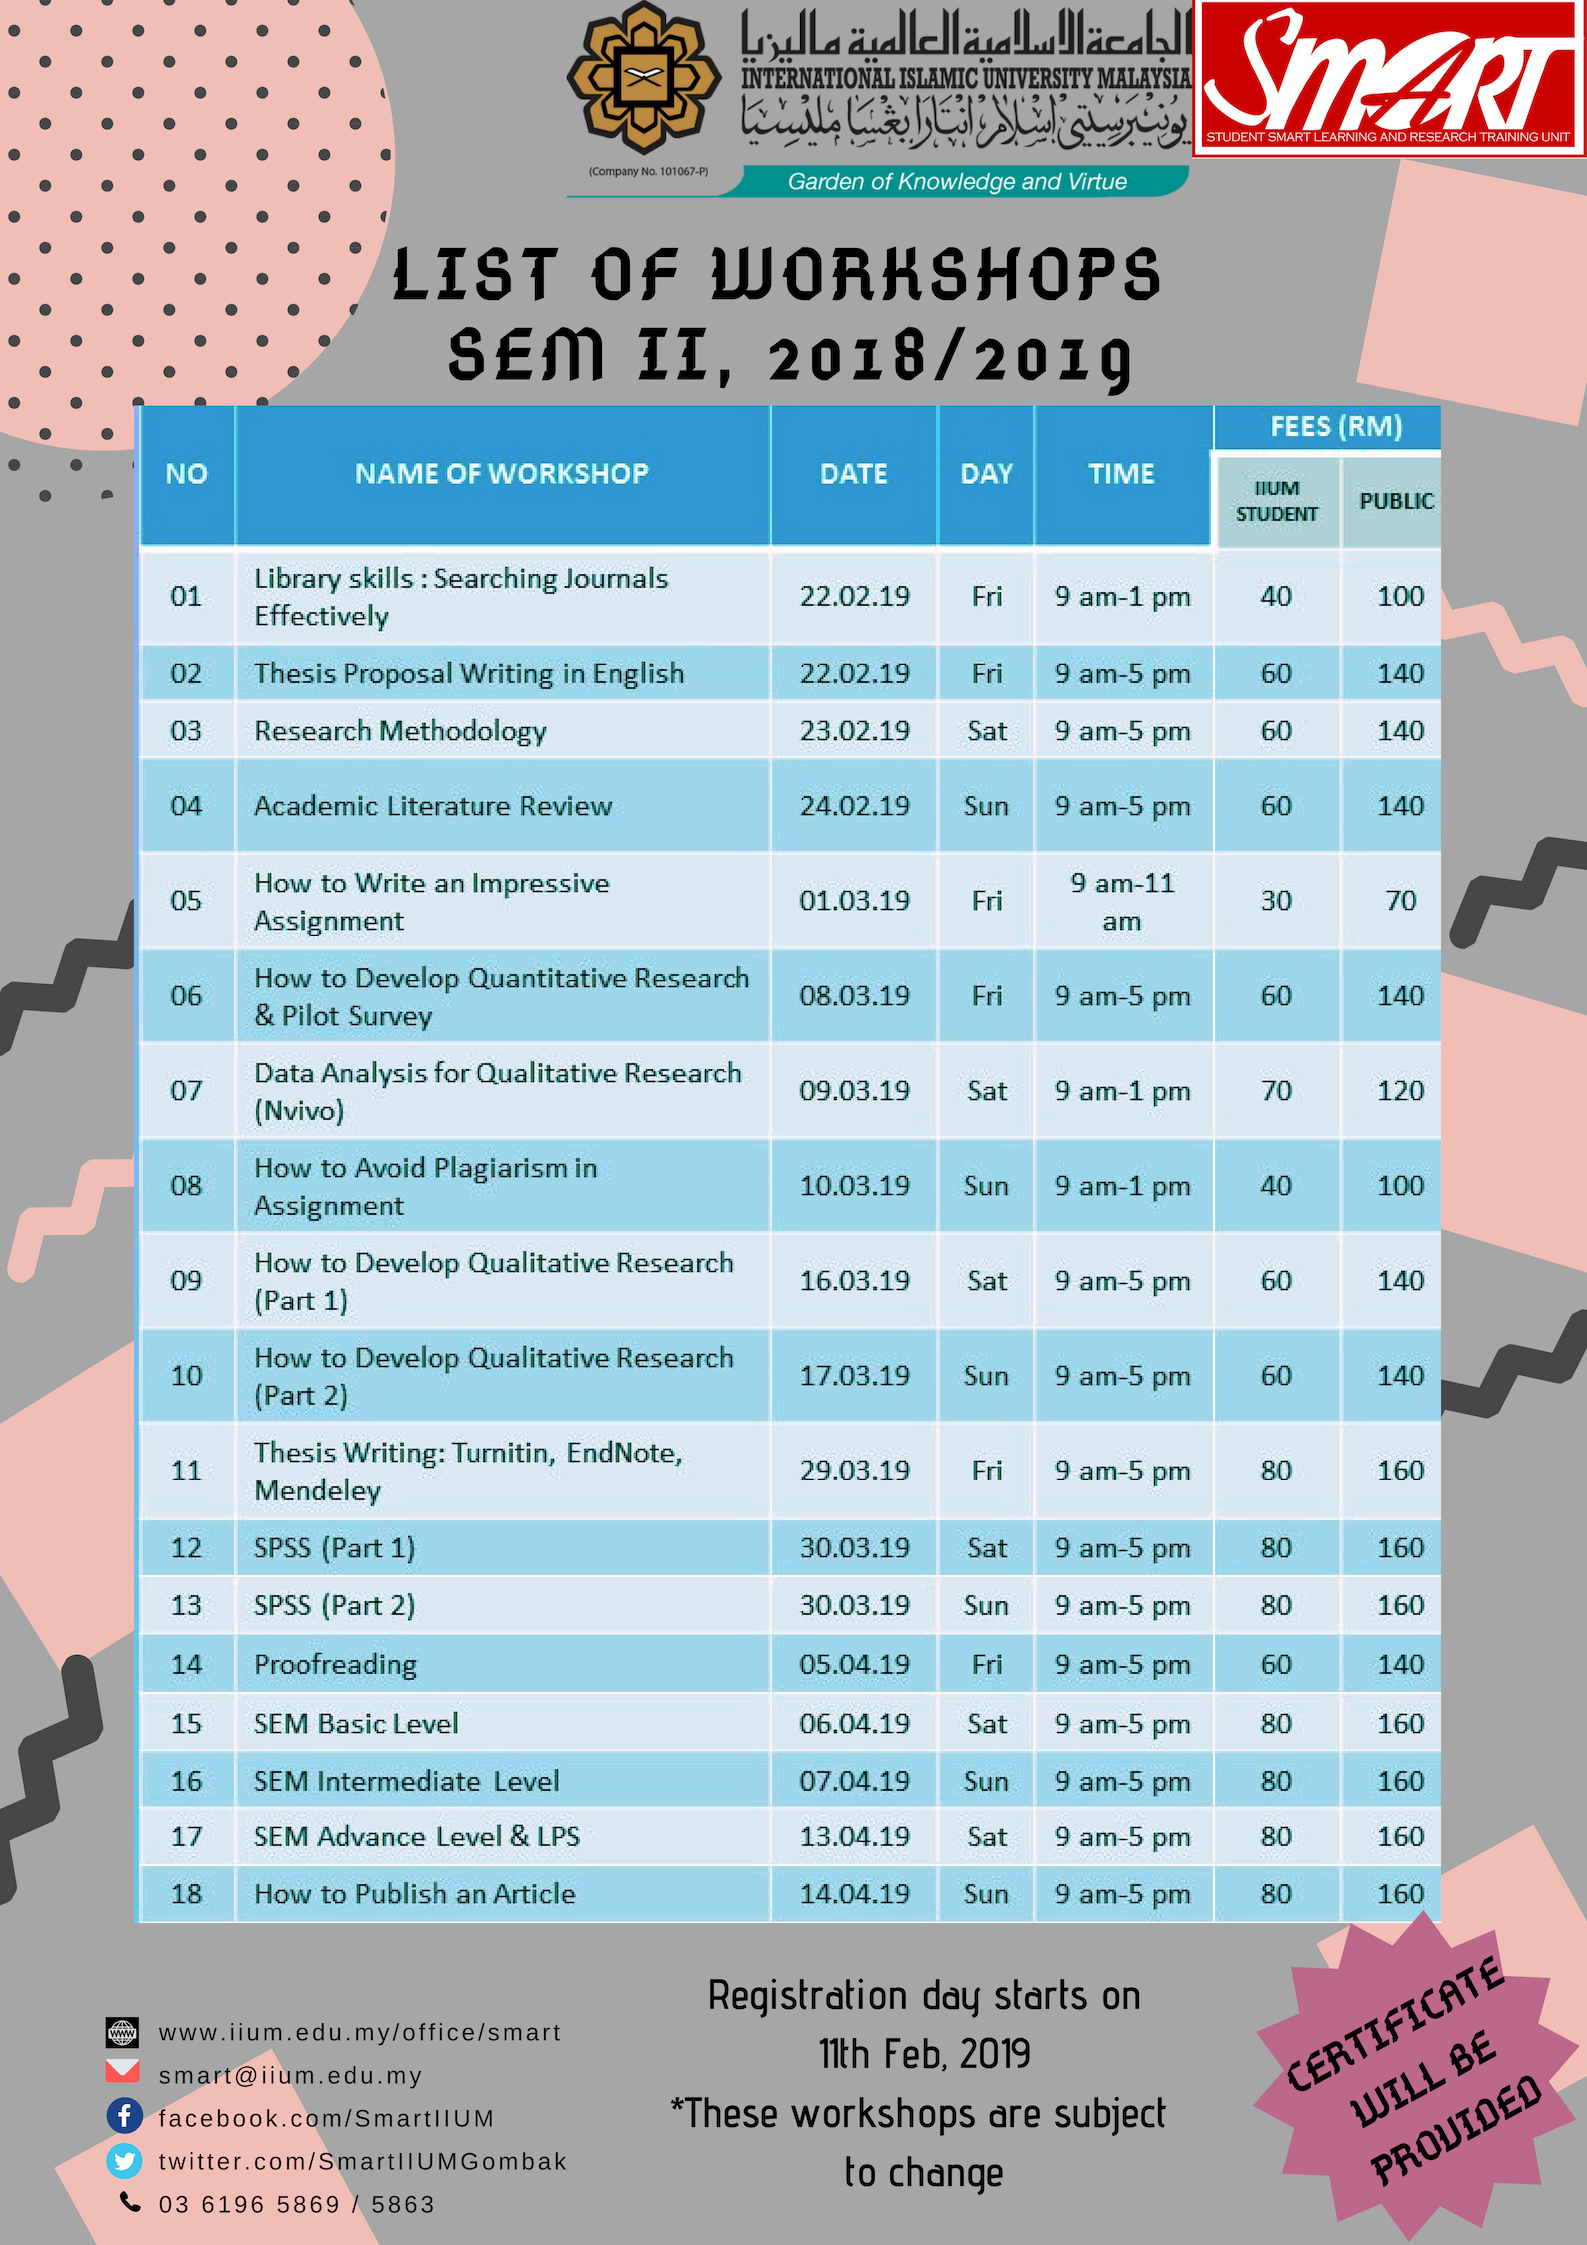 LIST OF WORKSHOPS, SEM 2, 2018/2019